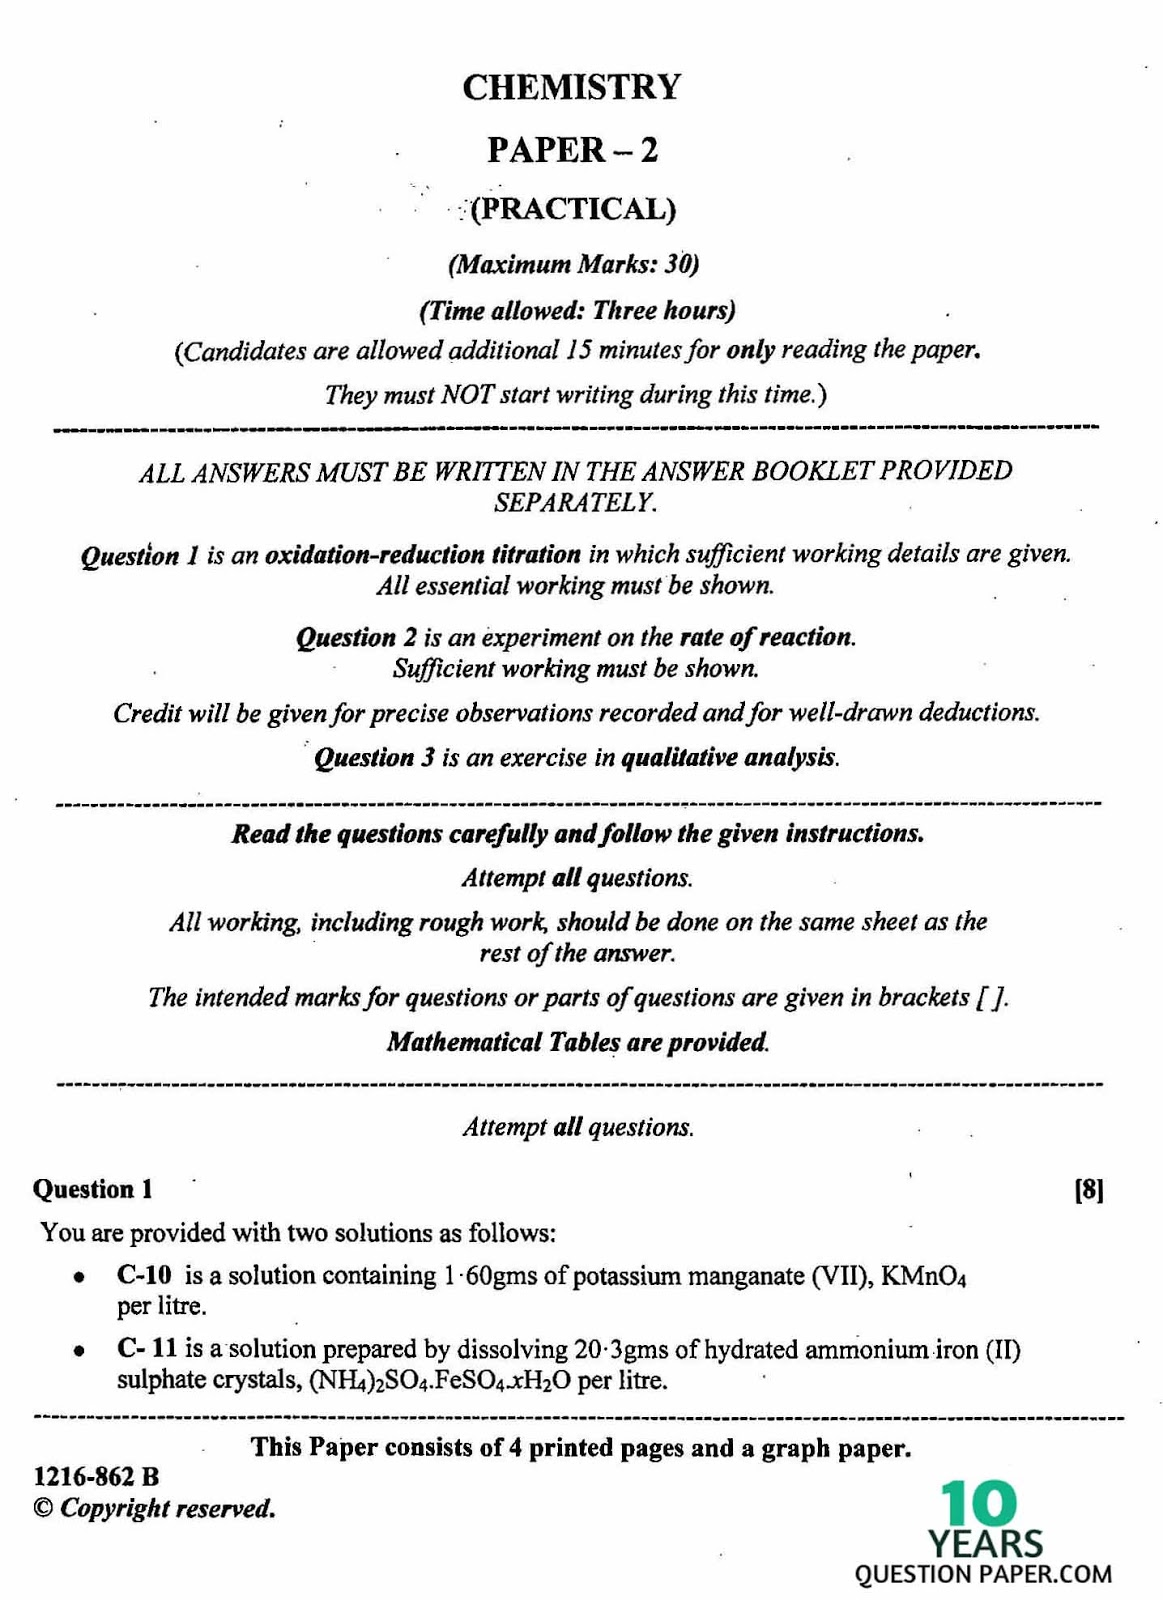 chemistry papers online english literature essay topics proper format for essay writing